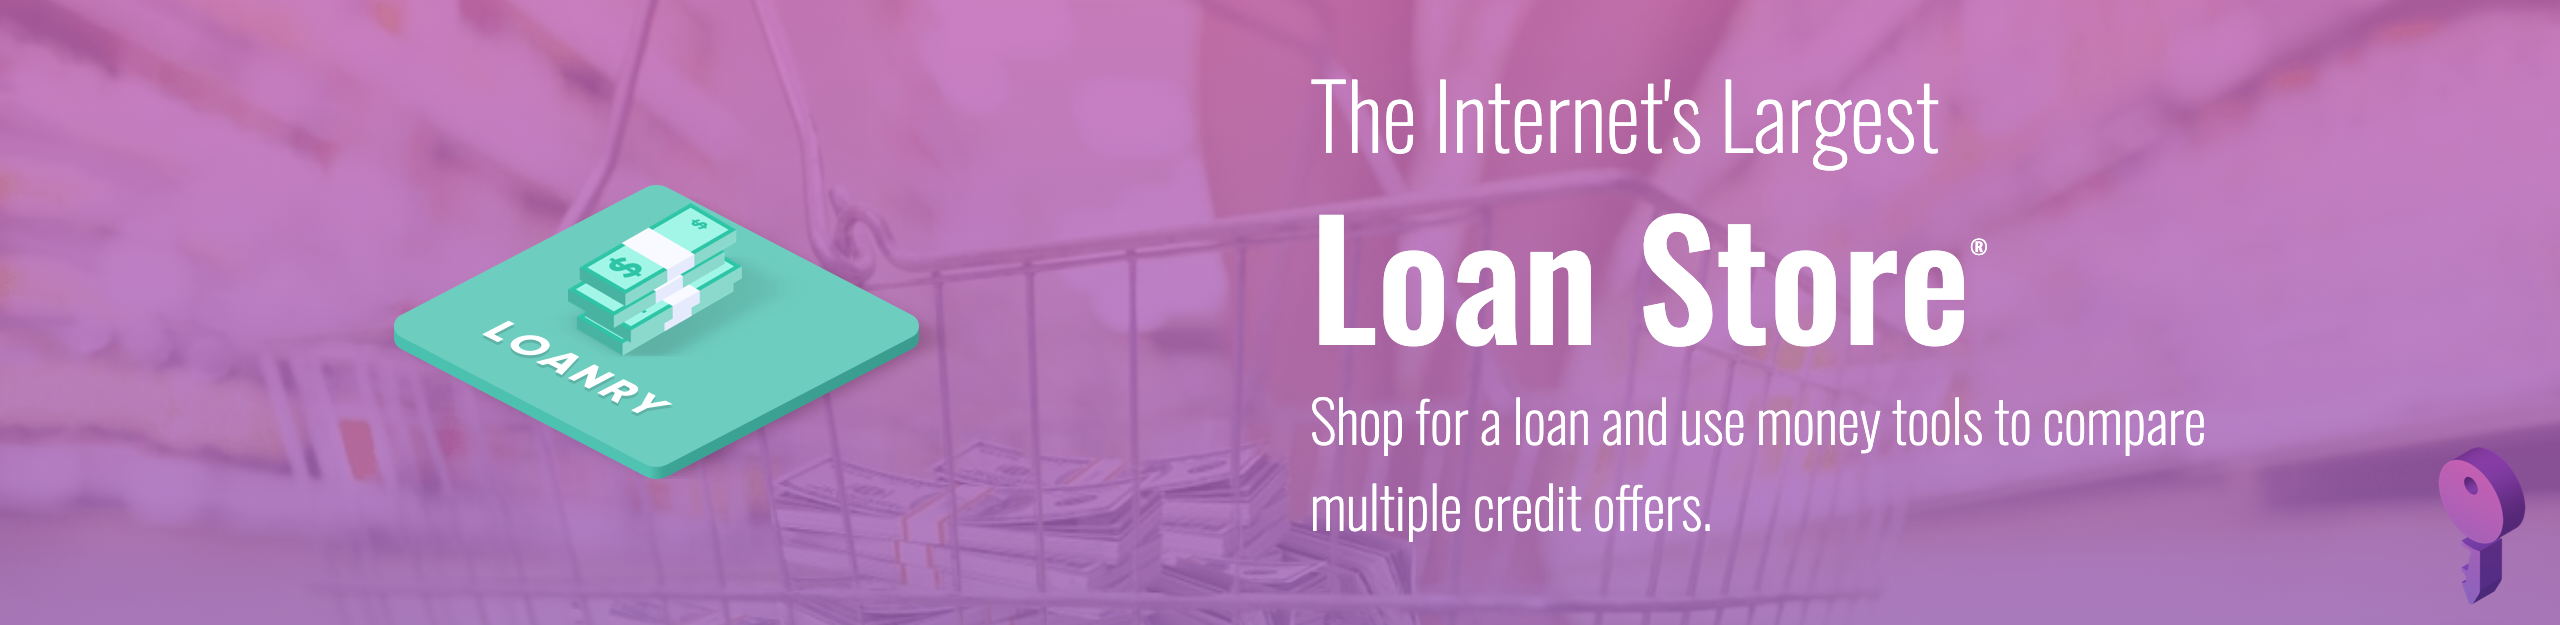 Loanry.com - Internet Largest Loan Store - Does not affect your credit score